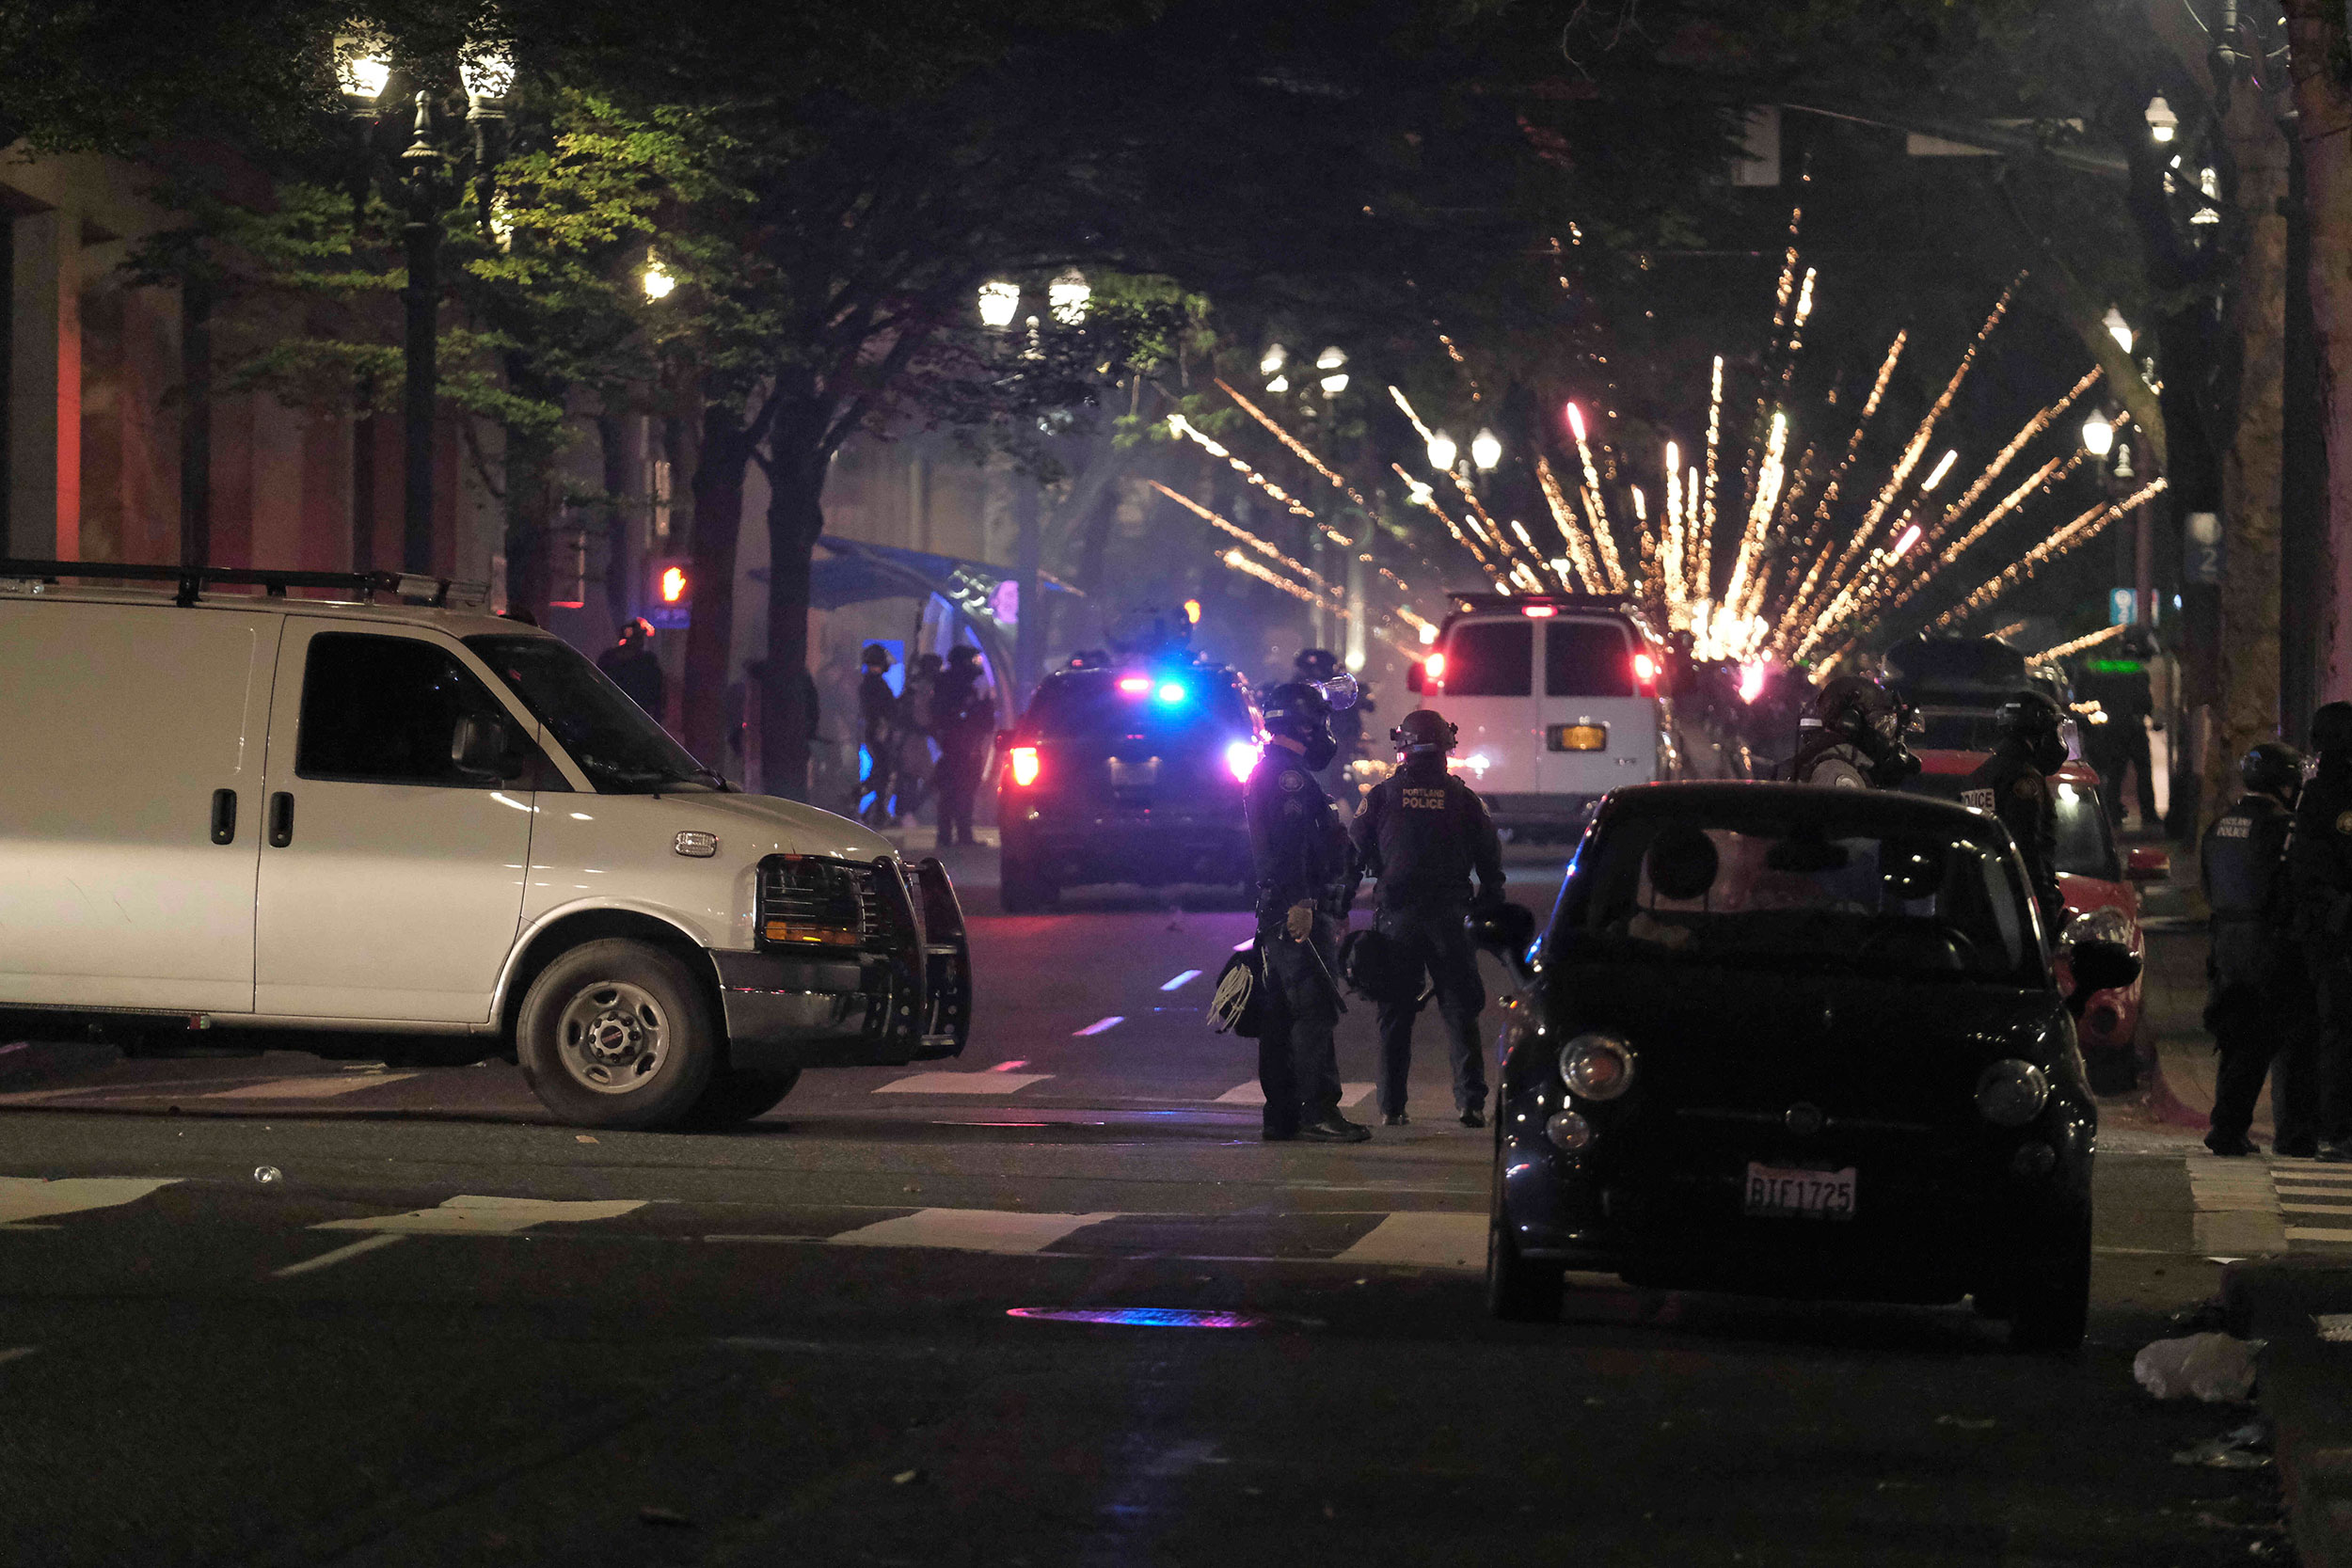 Fireworks and Projectiles Thrown at Police During Protests